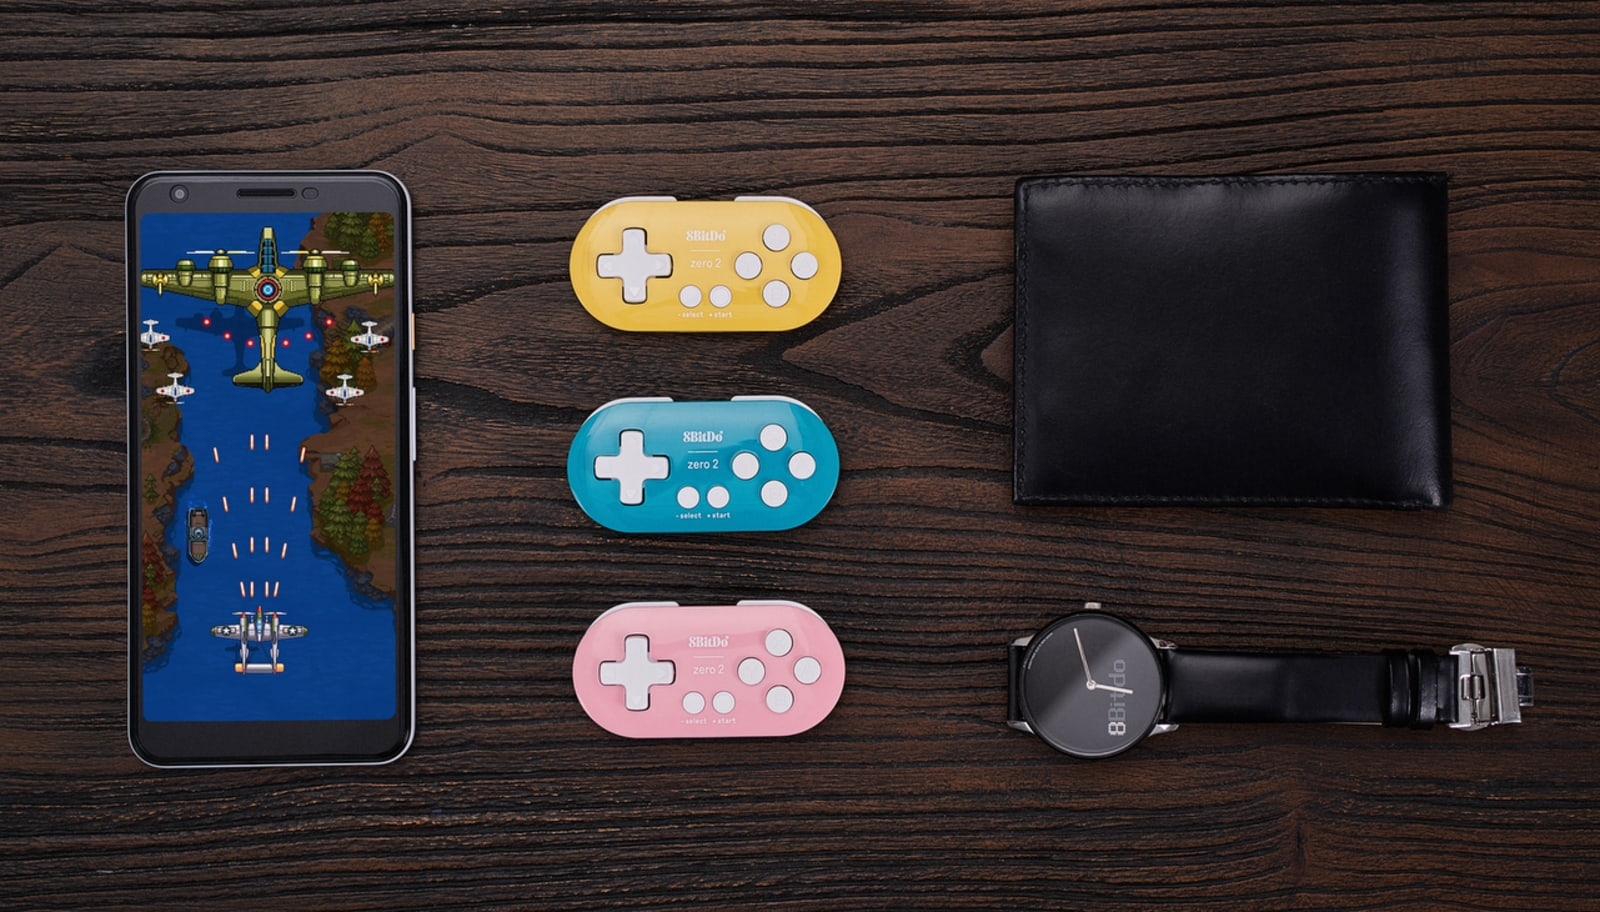 Nintendo Switch 8BitDo Zero 2